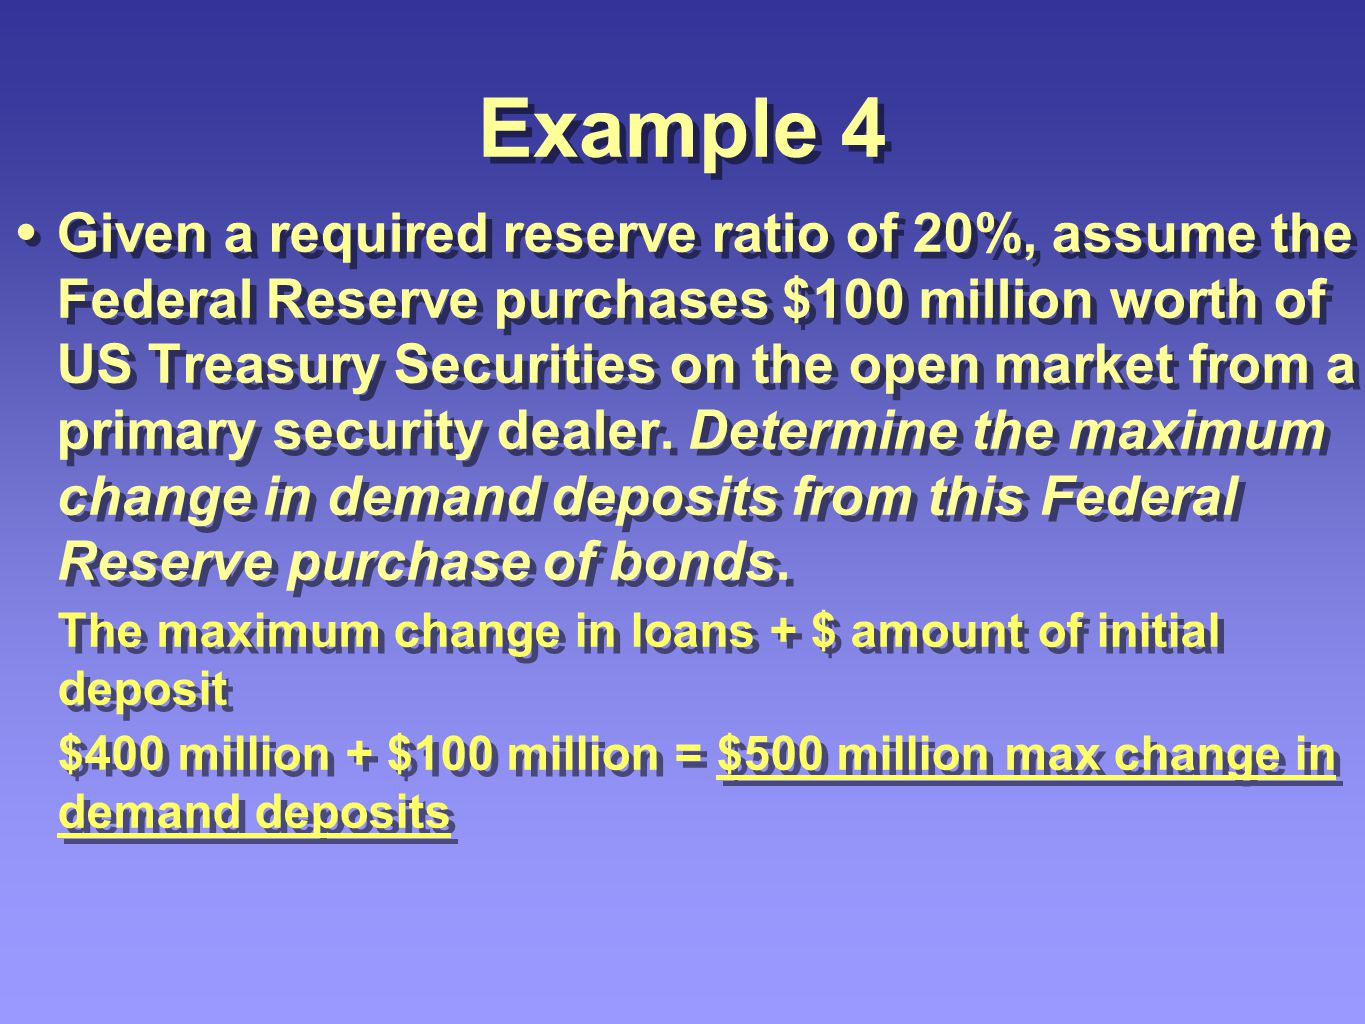 Review Required Reserve = Amount of deposit X required reserve ratio Excess Reserves = Total Reserves – Required Reserves Maximum amount a single bank can loan = the change in excess reserves caused by a deposit The money multiplier = 1/required reserve ratio Total Change in Loans = amount single bank can lend X money multiplier Total Change in the money supply = Total Change in Loans + $ amount of Fed action Total Change in demand deposits = Total Change in Loans + any cash deposited Required Reserve = Amount of deposit X required reserve ratio Excess Reserves = Total Reserves – Required Reserves Maximum amount a single bank can loan = the change in excess reserves caused by a deposit The money multiplier = 1/required reserve ratio Total Change in Loans = amount single bank can lend X money multiplier Total Change in the money supply = Total Change in Loans + $ amount of Fed action Total Change in demand deposits = Total Change in Loans + any cash deposited